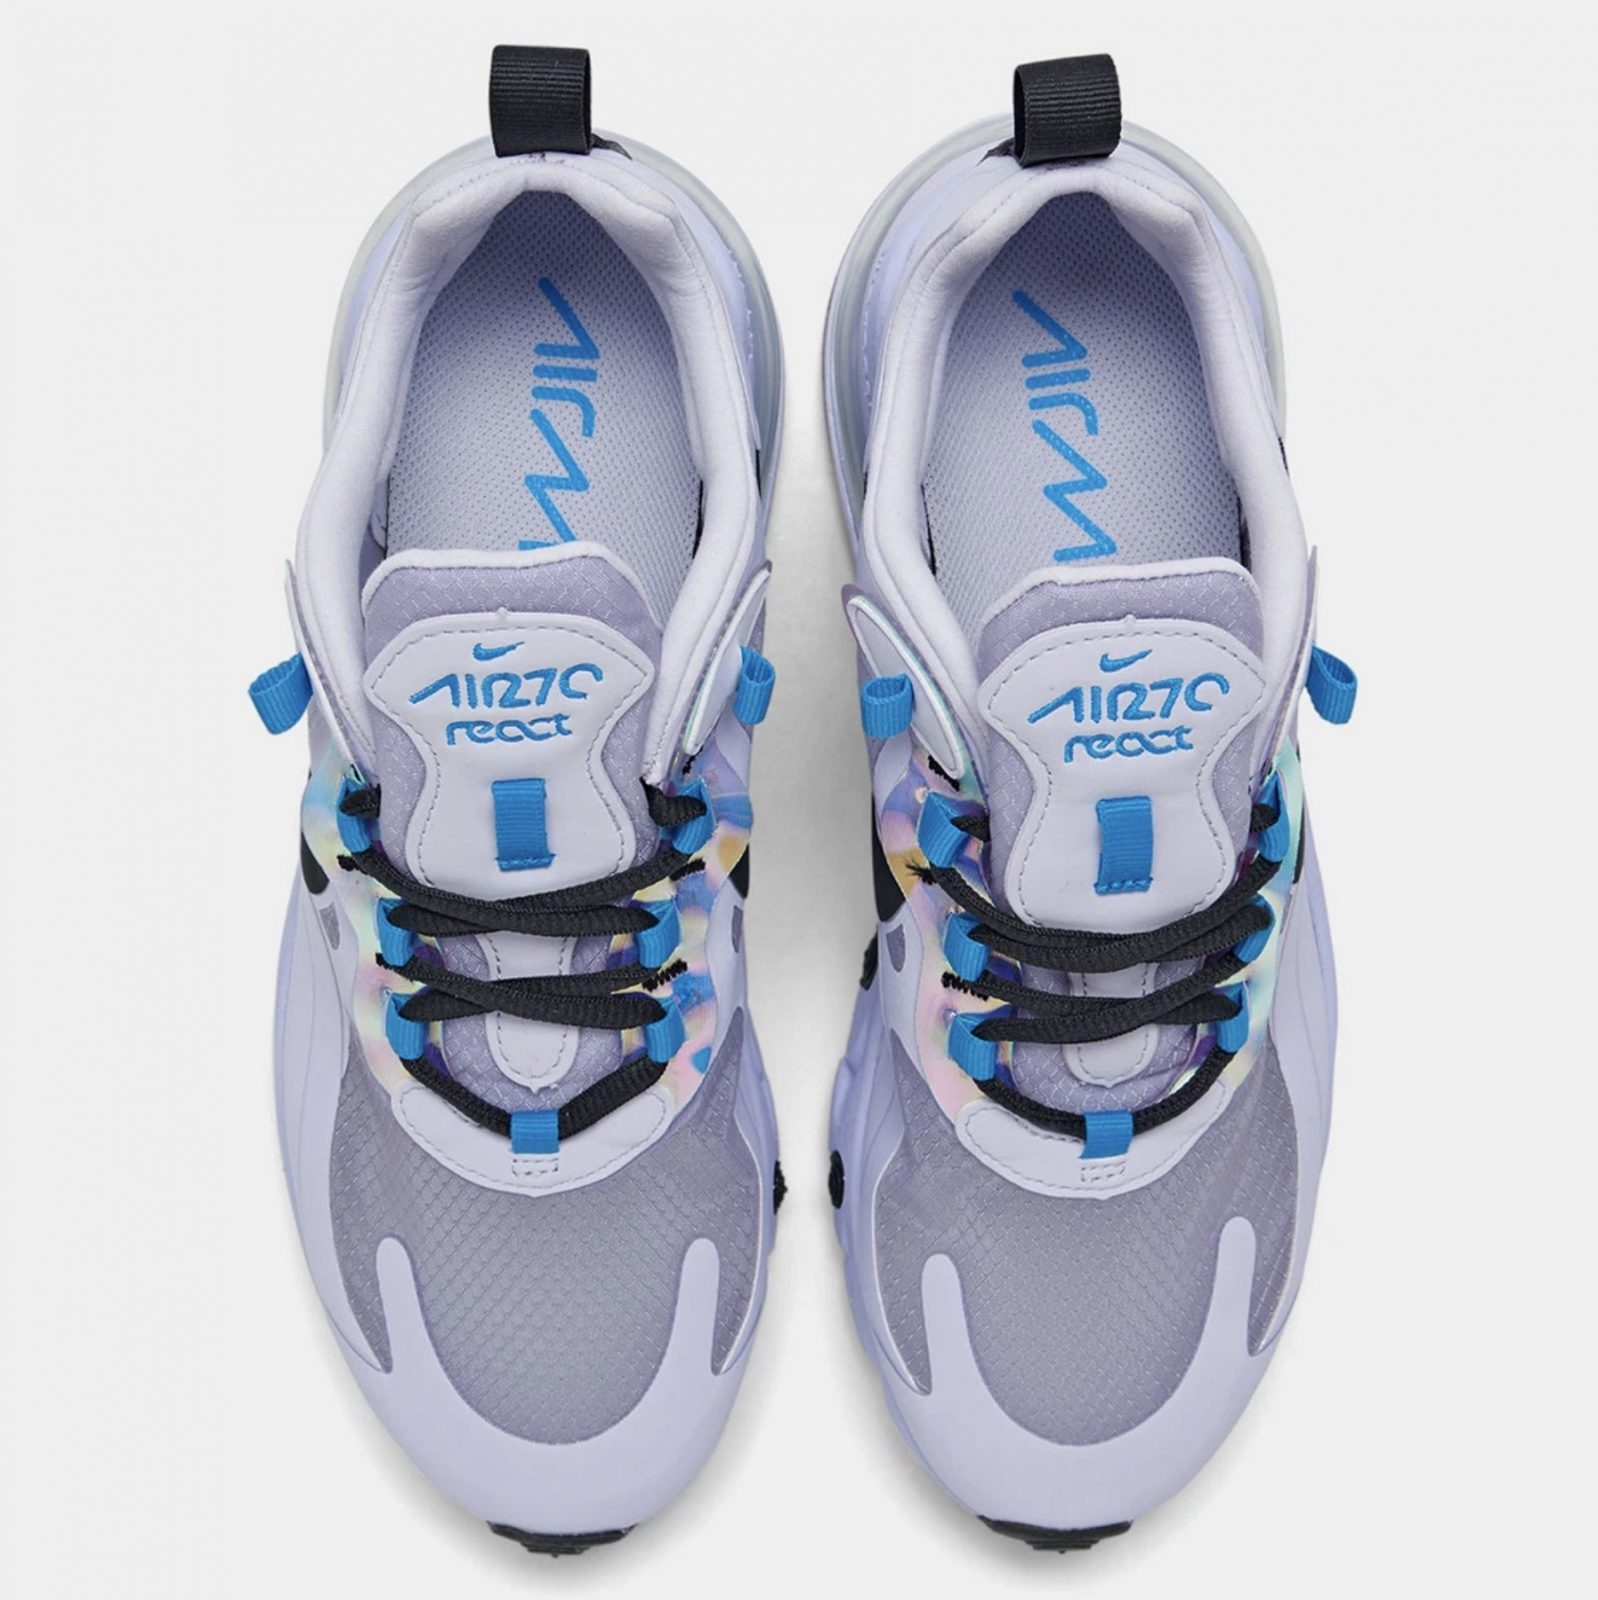 Nike Air Max 270 React Amethyst Tint